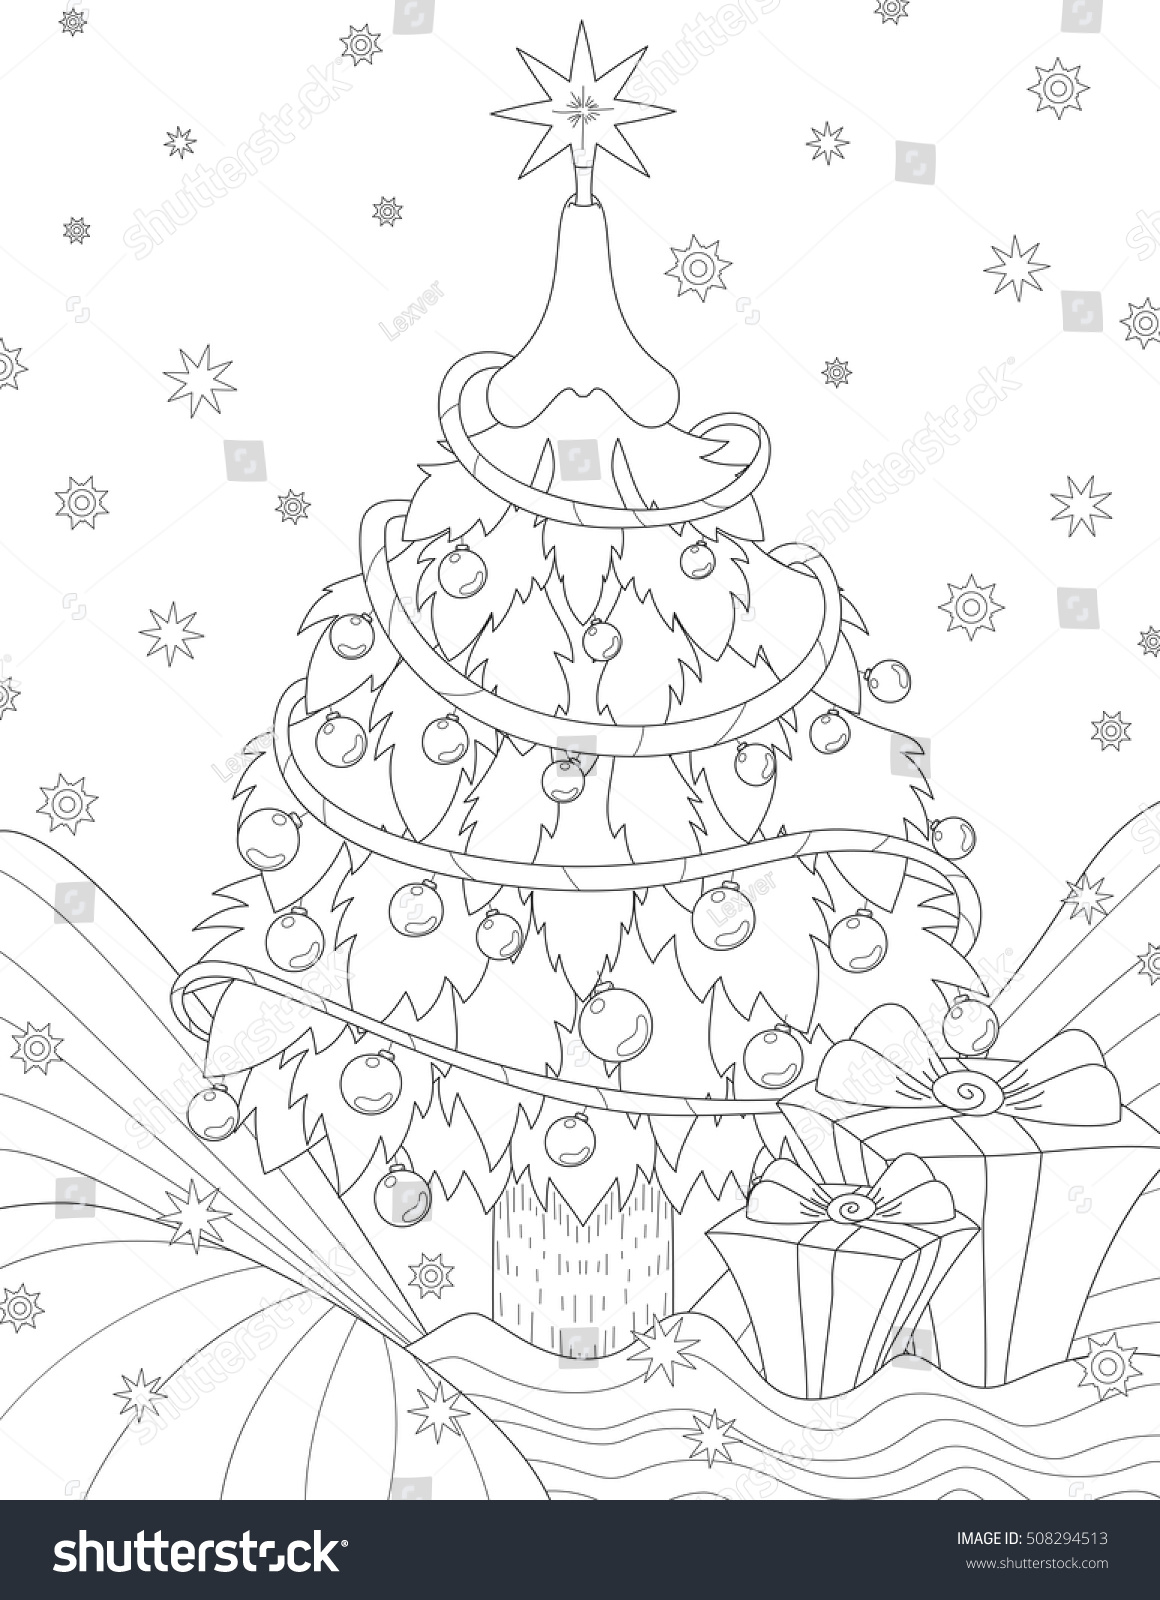 Vector Anti Stress Coloring Book Page For Adult Pattern With Christmas Tree And Gifts In